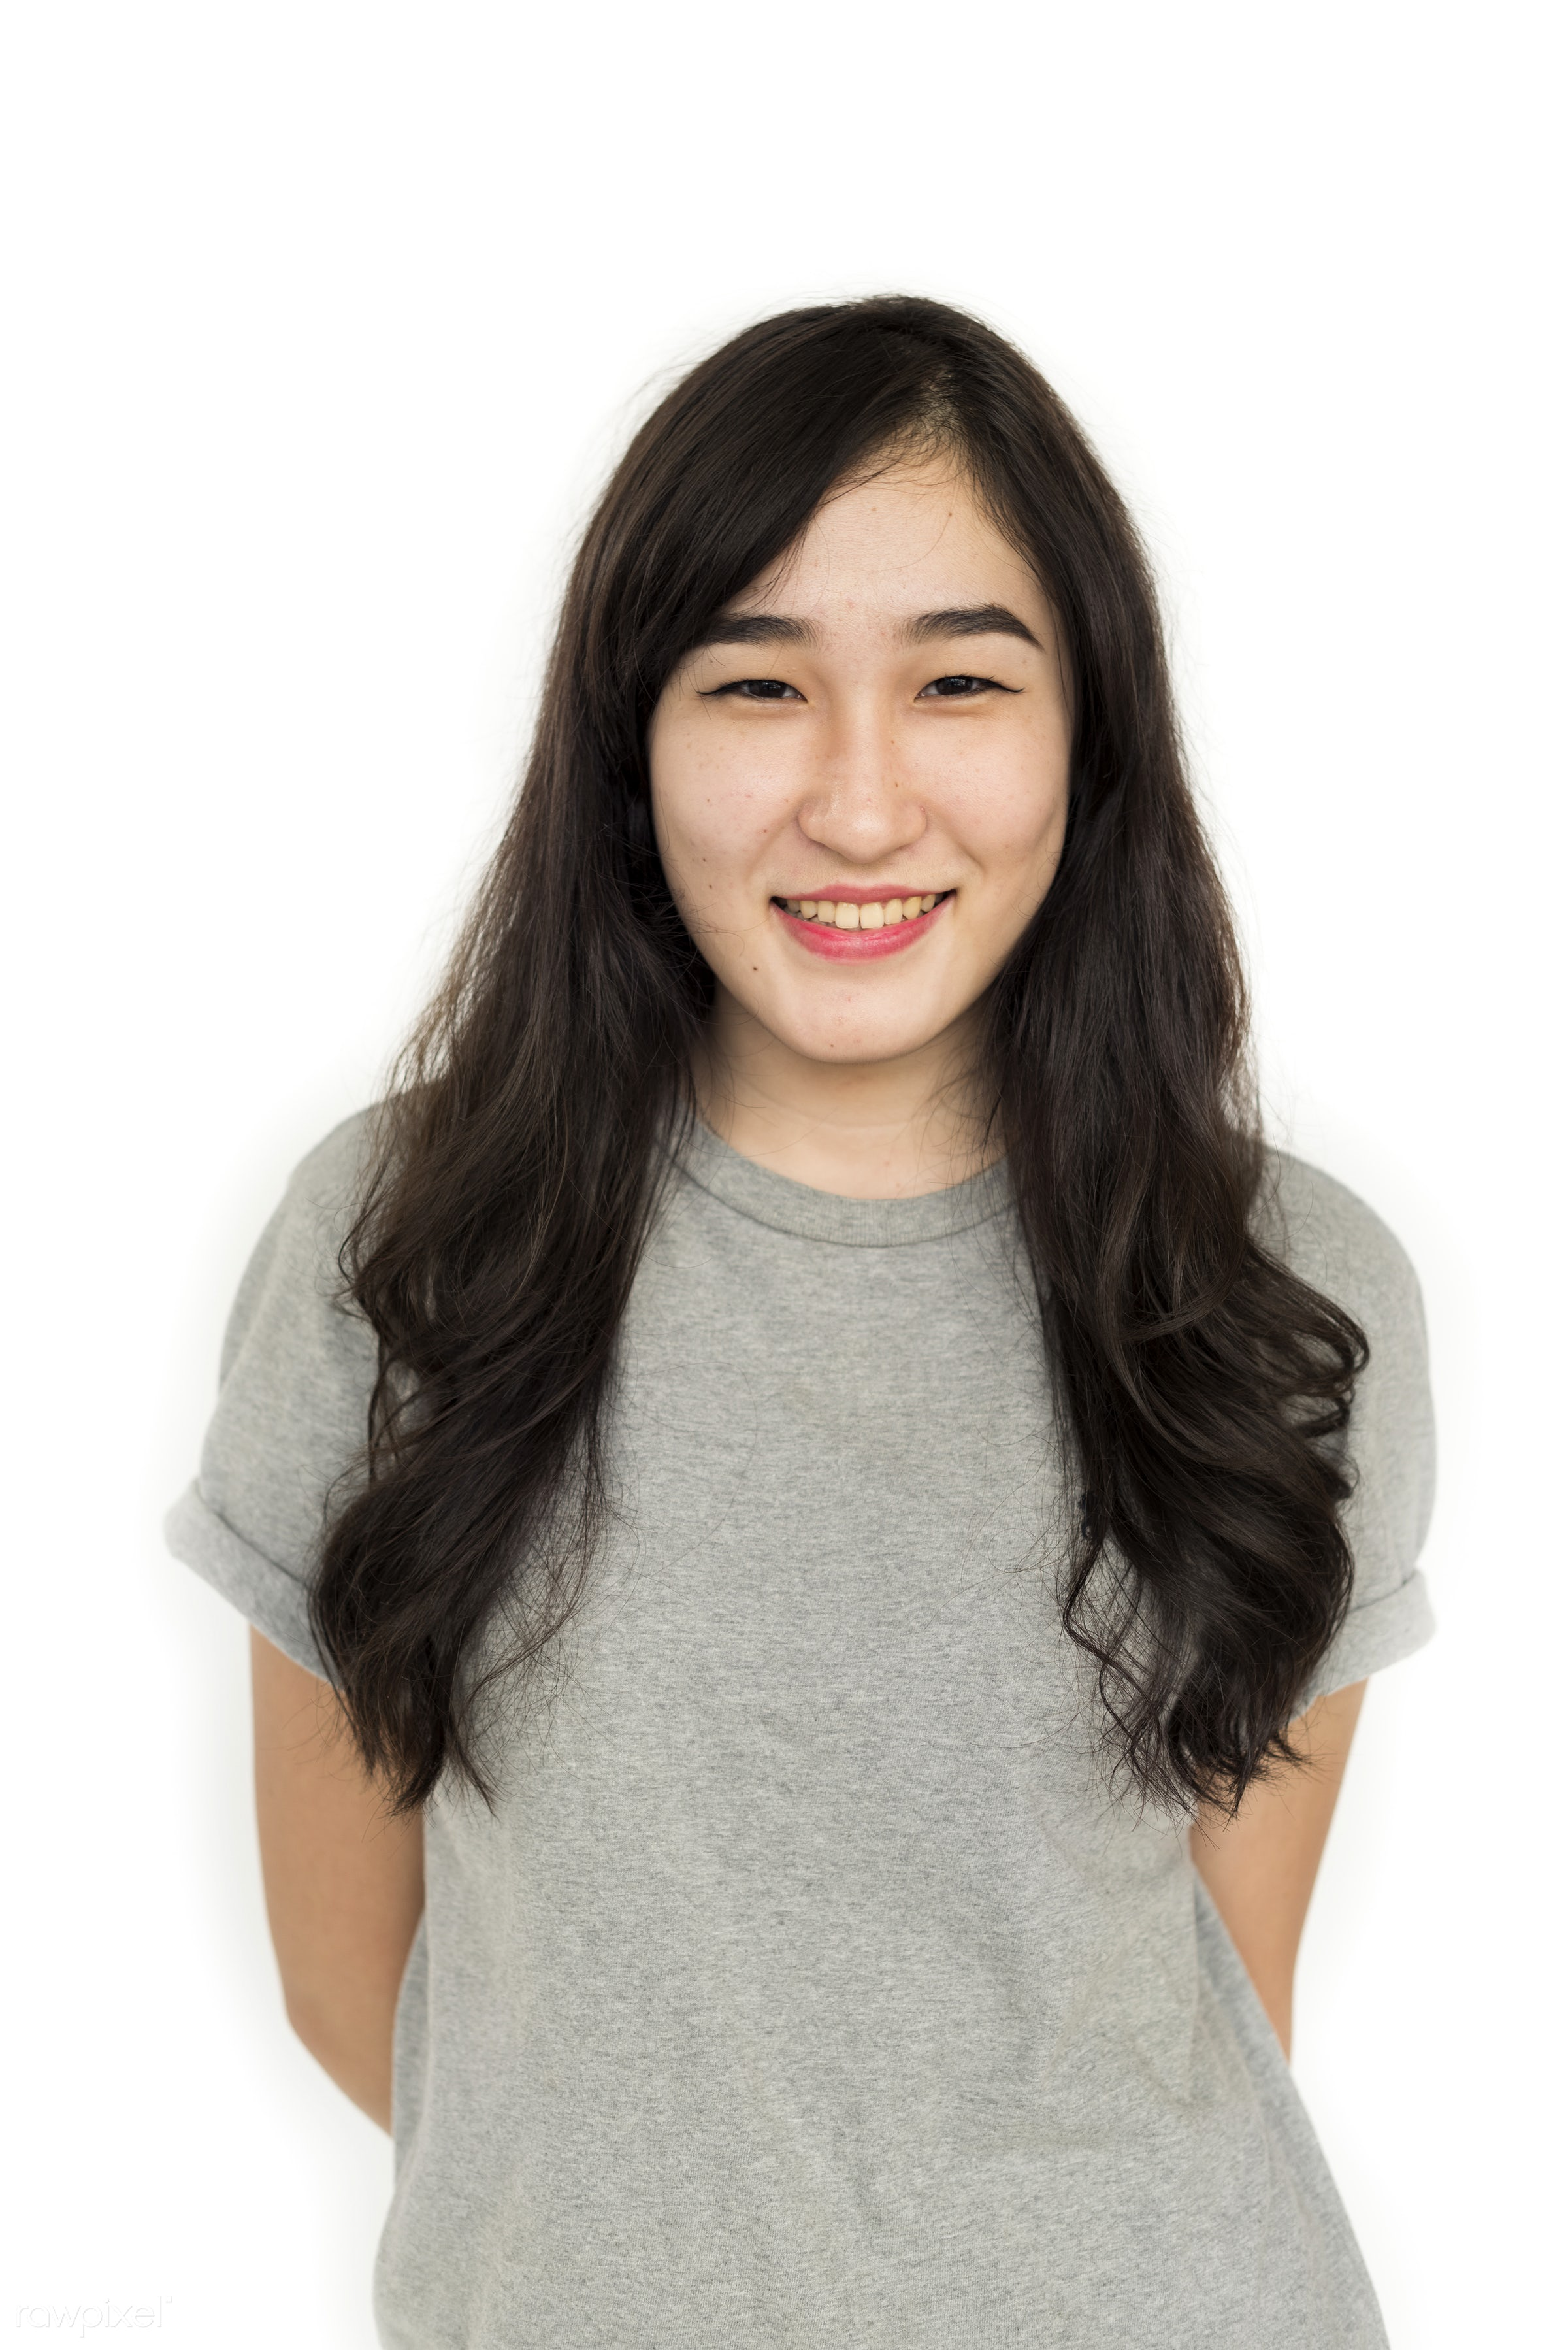 expression, studio, person, isolated on white, nice, people, asian ethnicity, woman, casual, cheerful, smiling, isolated,...